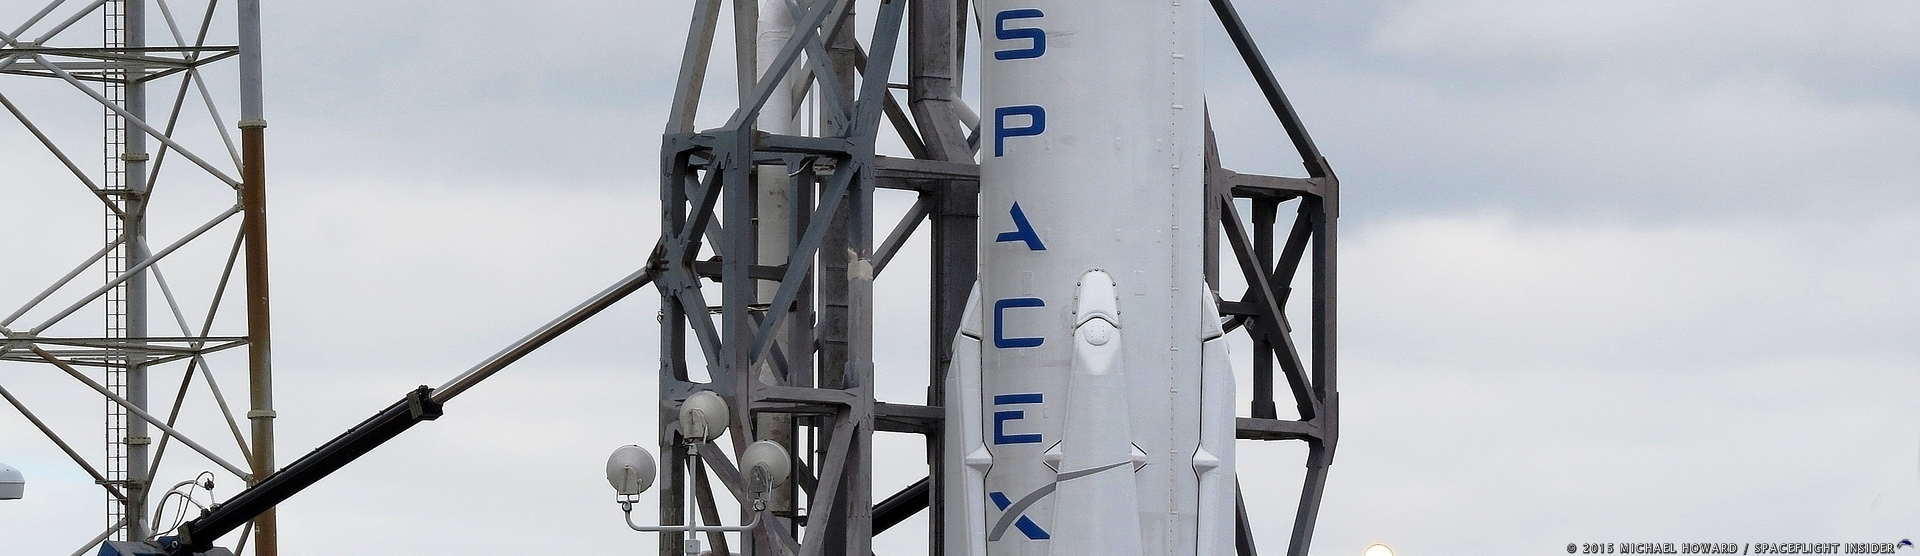 SpaceX Is Now Hoping To Conduct The Return To Flight Of The Falcon 9